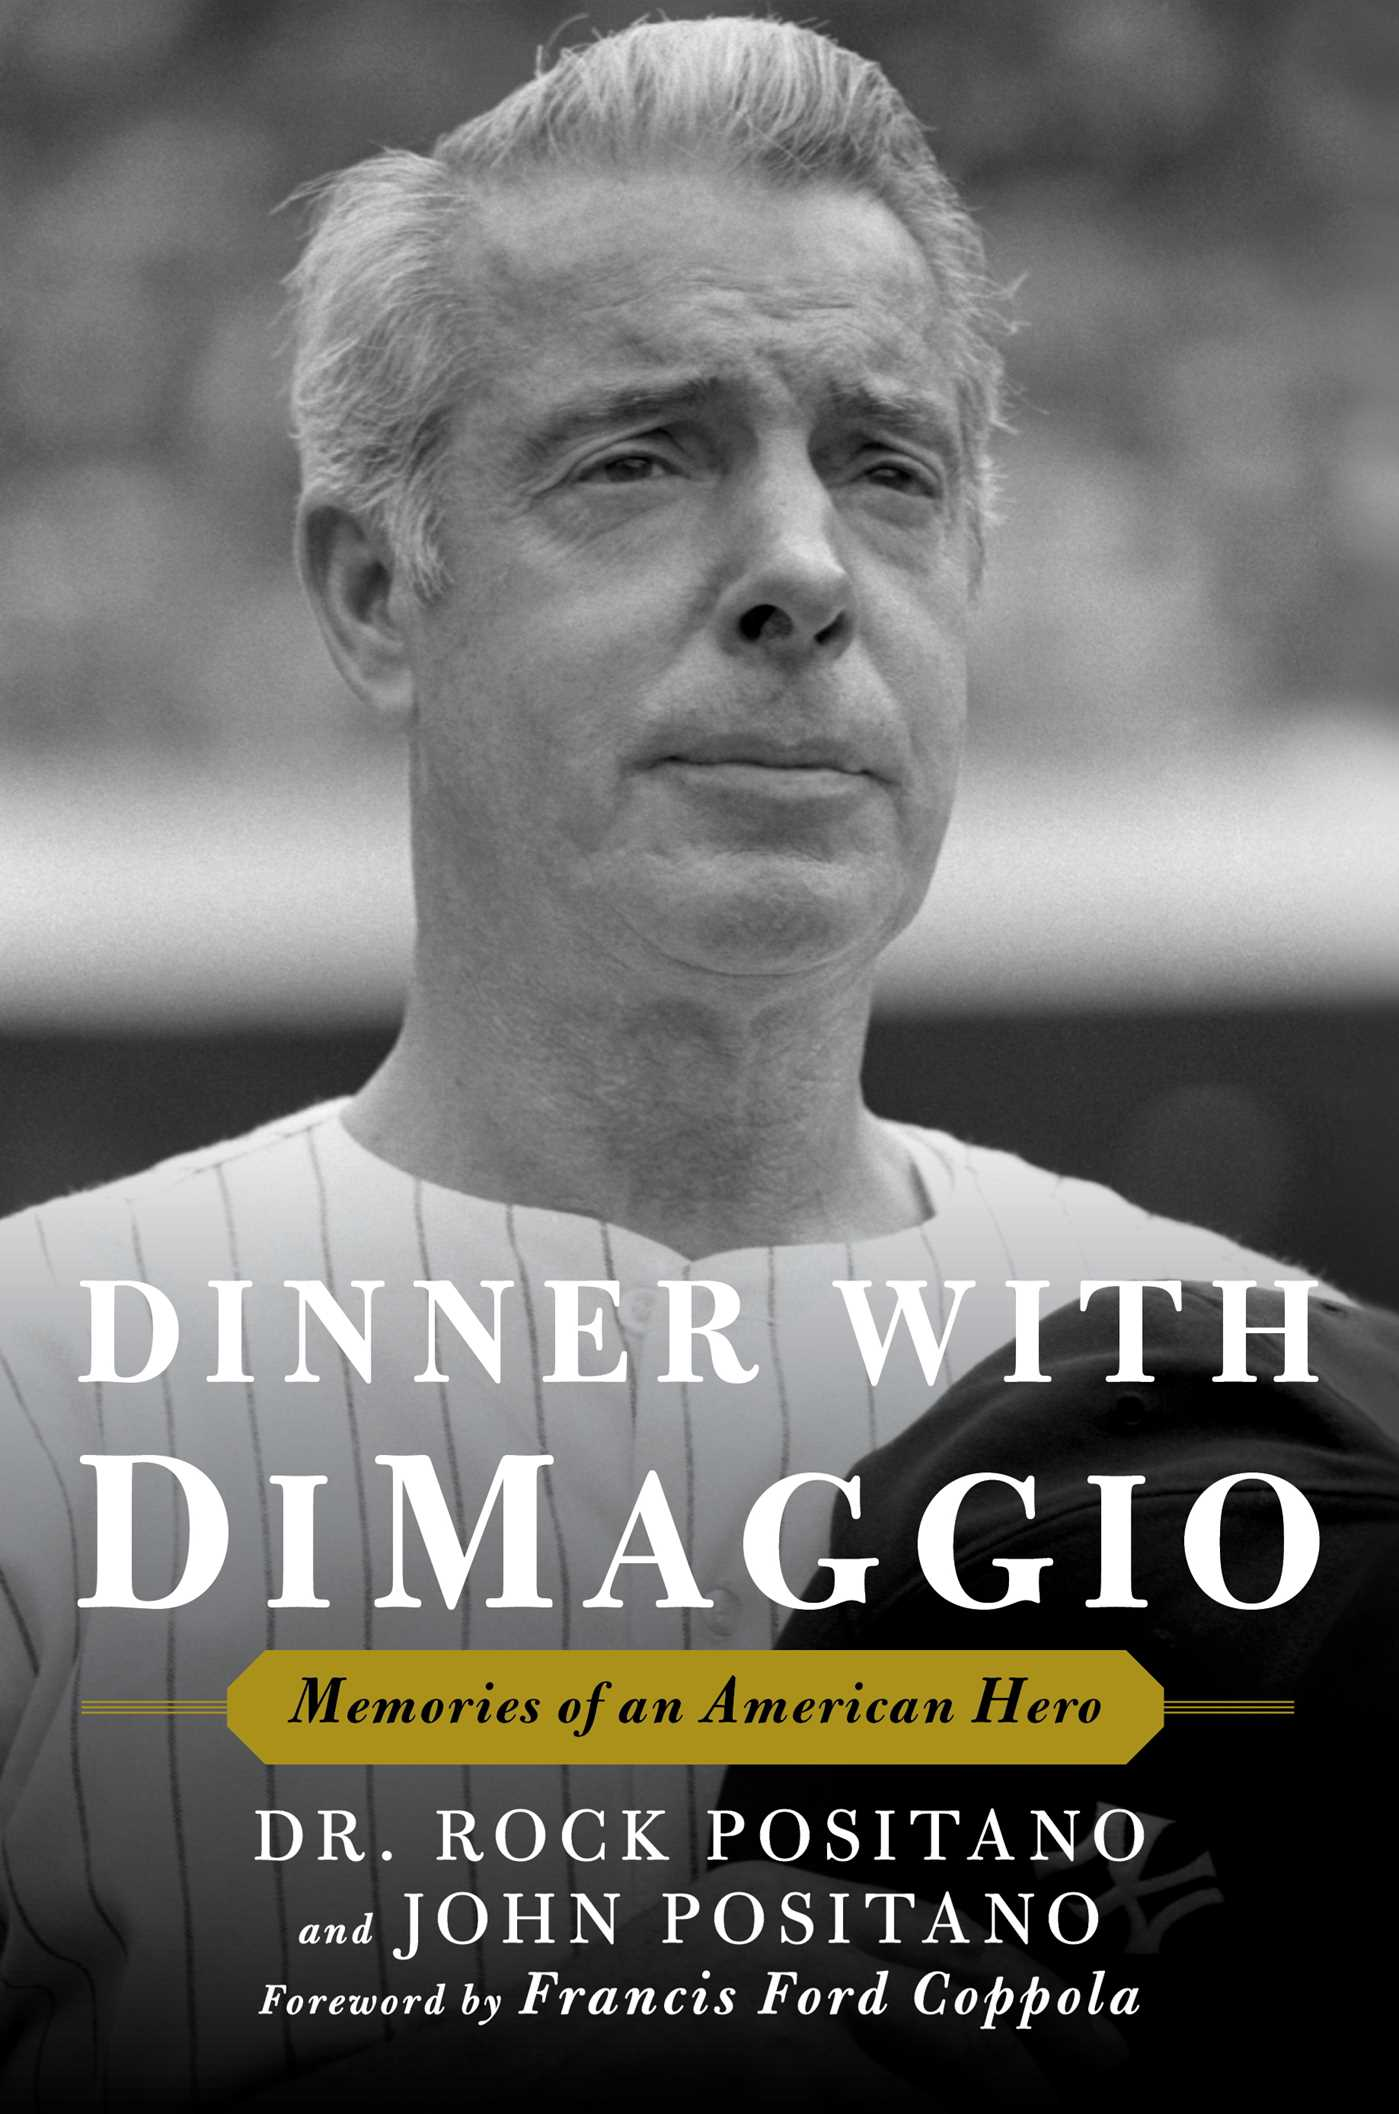 http://d28hgpri8am2if.cloudfront.net/book_images/onix/cvr9781501156847/dinner-with-dimaggio-9781501156847_hr.jpg